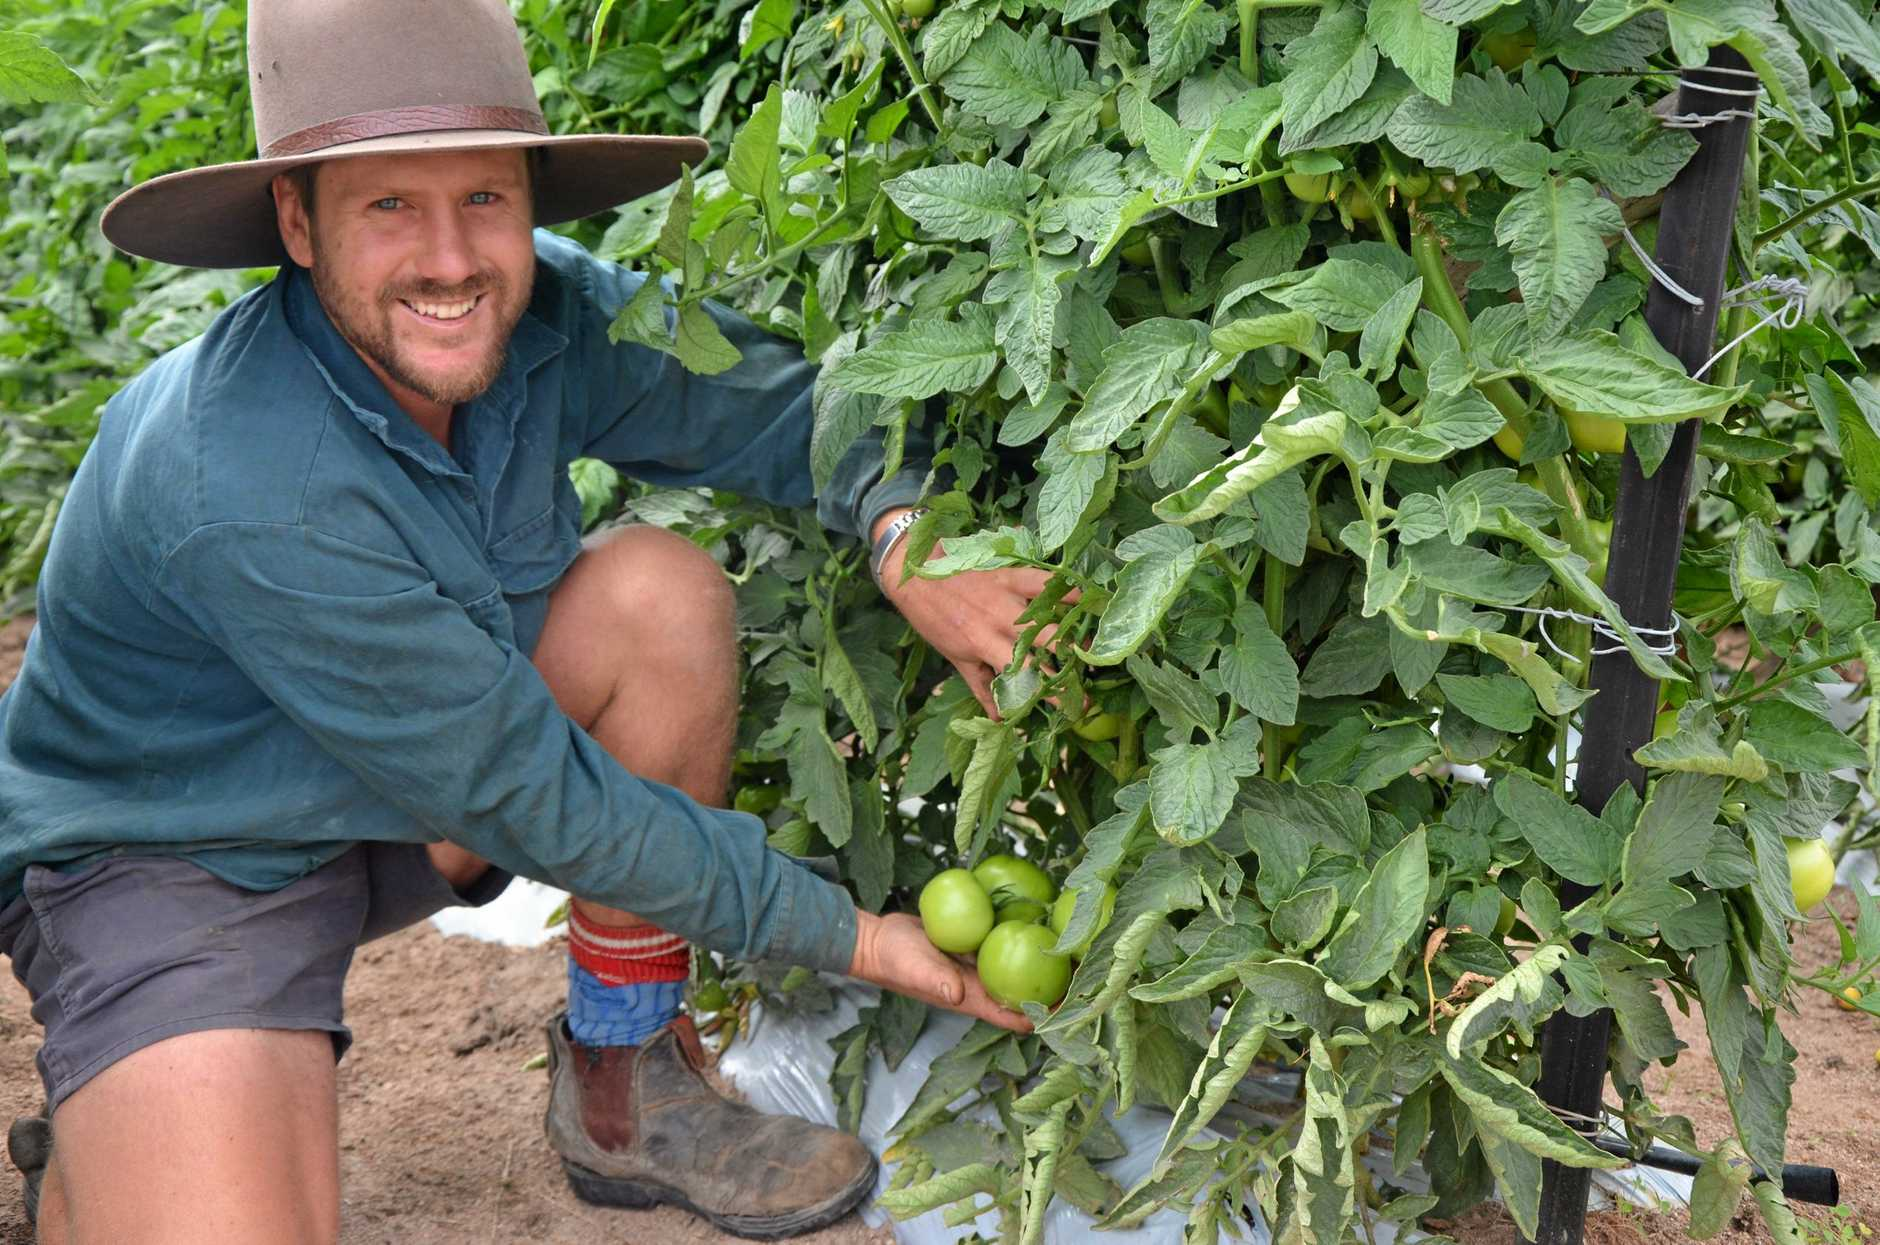 TECH LEADER: David Andreatta received $250,000 from the Queensland Government to install an automated tomato sorting system. It will scan each piece of fruit 500 times using cameras and sensors program to pick up specific defects.